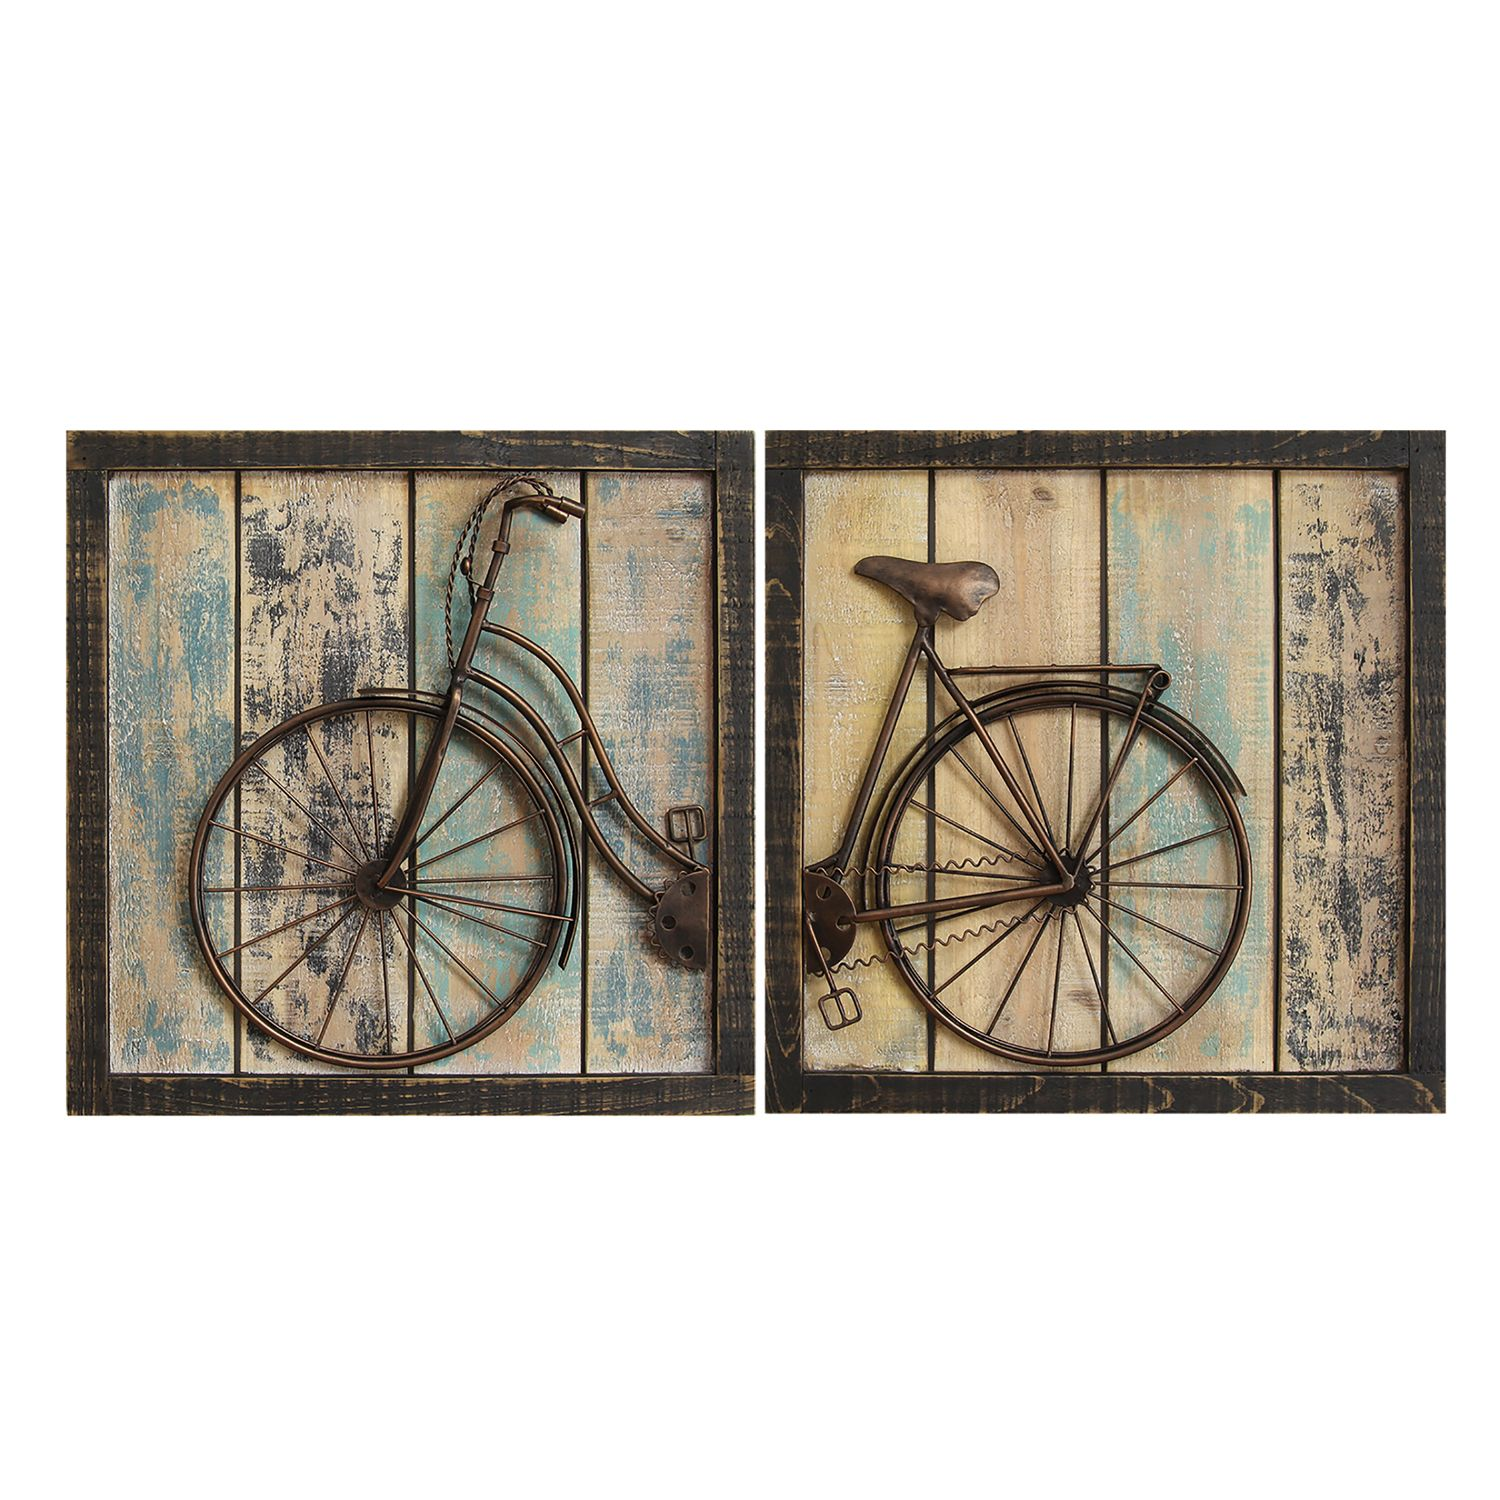 Stratton Home Decor Distressed Bicycle Wall Decor 2 Piece Set